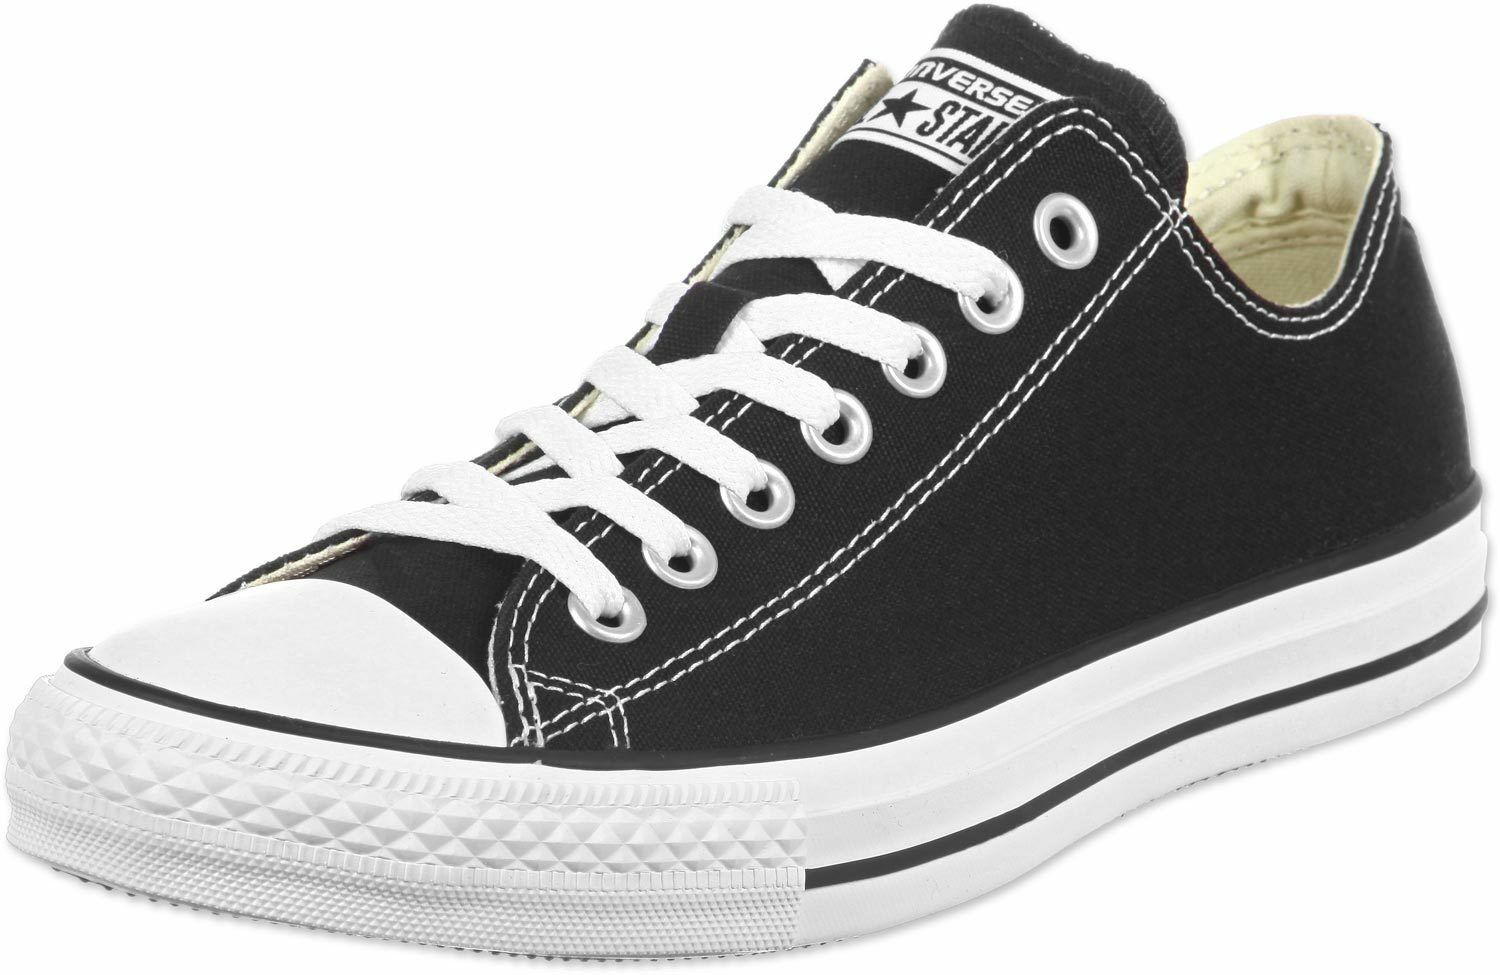 CONVERSE ALL STAR LO SHOE SHOES ORIGINAL STORE BLACK M9166C (PVP IN STORE ORIGINAL 6b4a4e